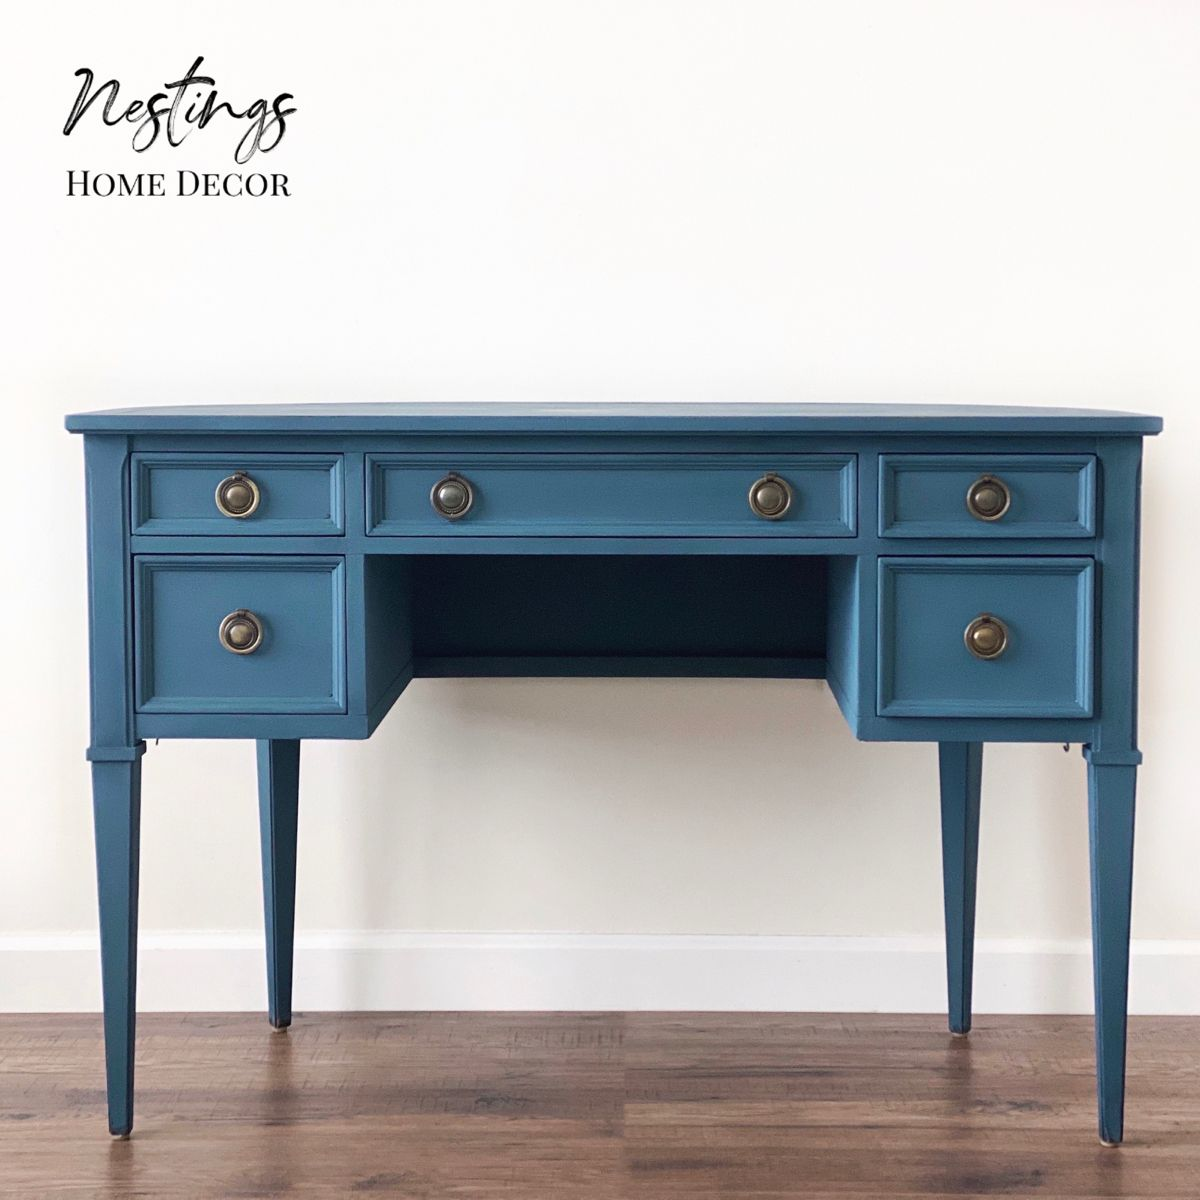 #chalkpaint #chalkpaintfurniture #painting #paint #diy #anniesloanhome #anniesloanchalkpaint #furniturepaint #furniturediy #furniturepainting #furnitureideas #desk #upcycling #handpainted #handpaintedfurniture